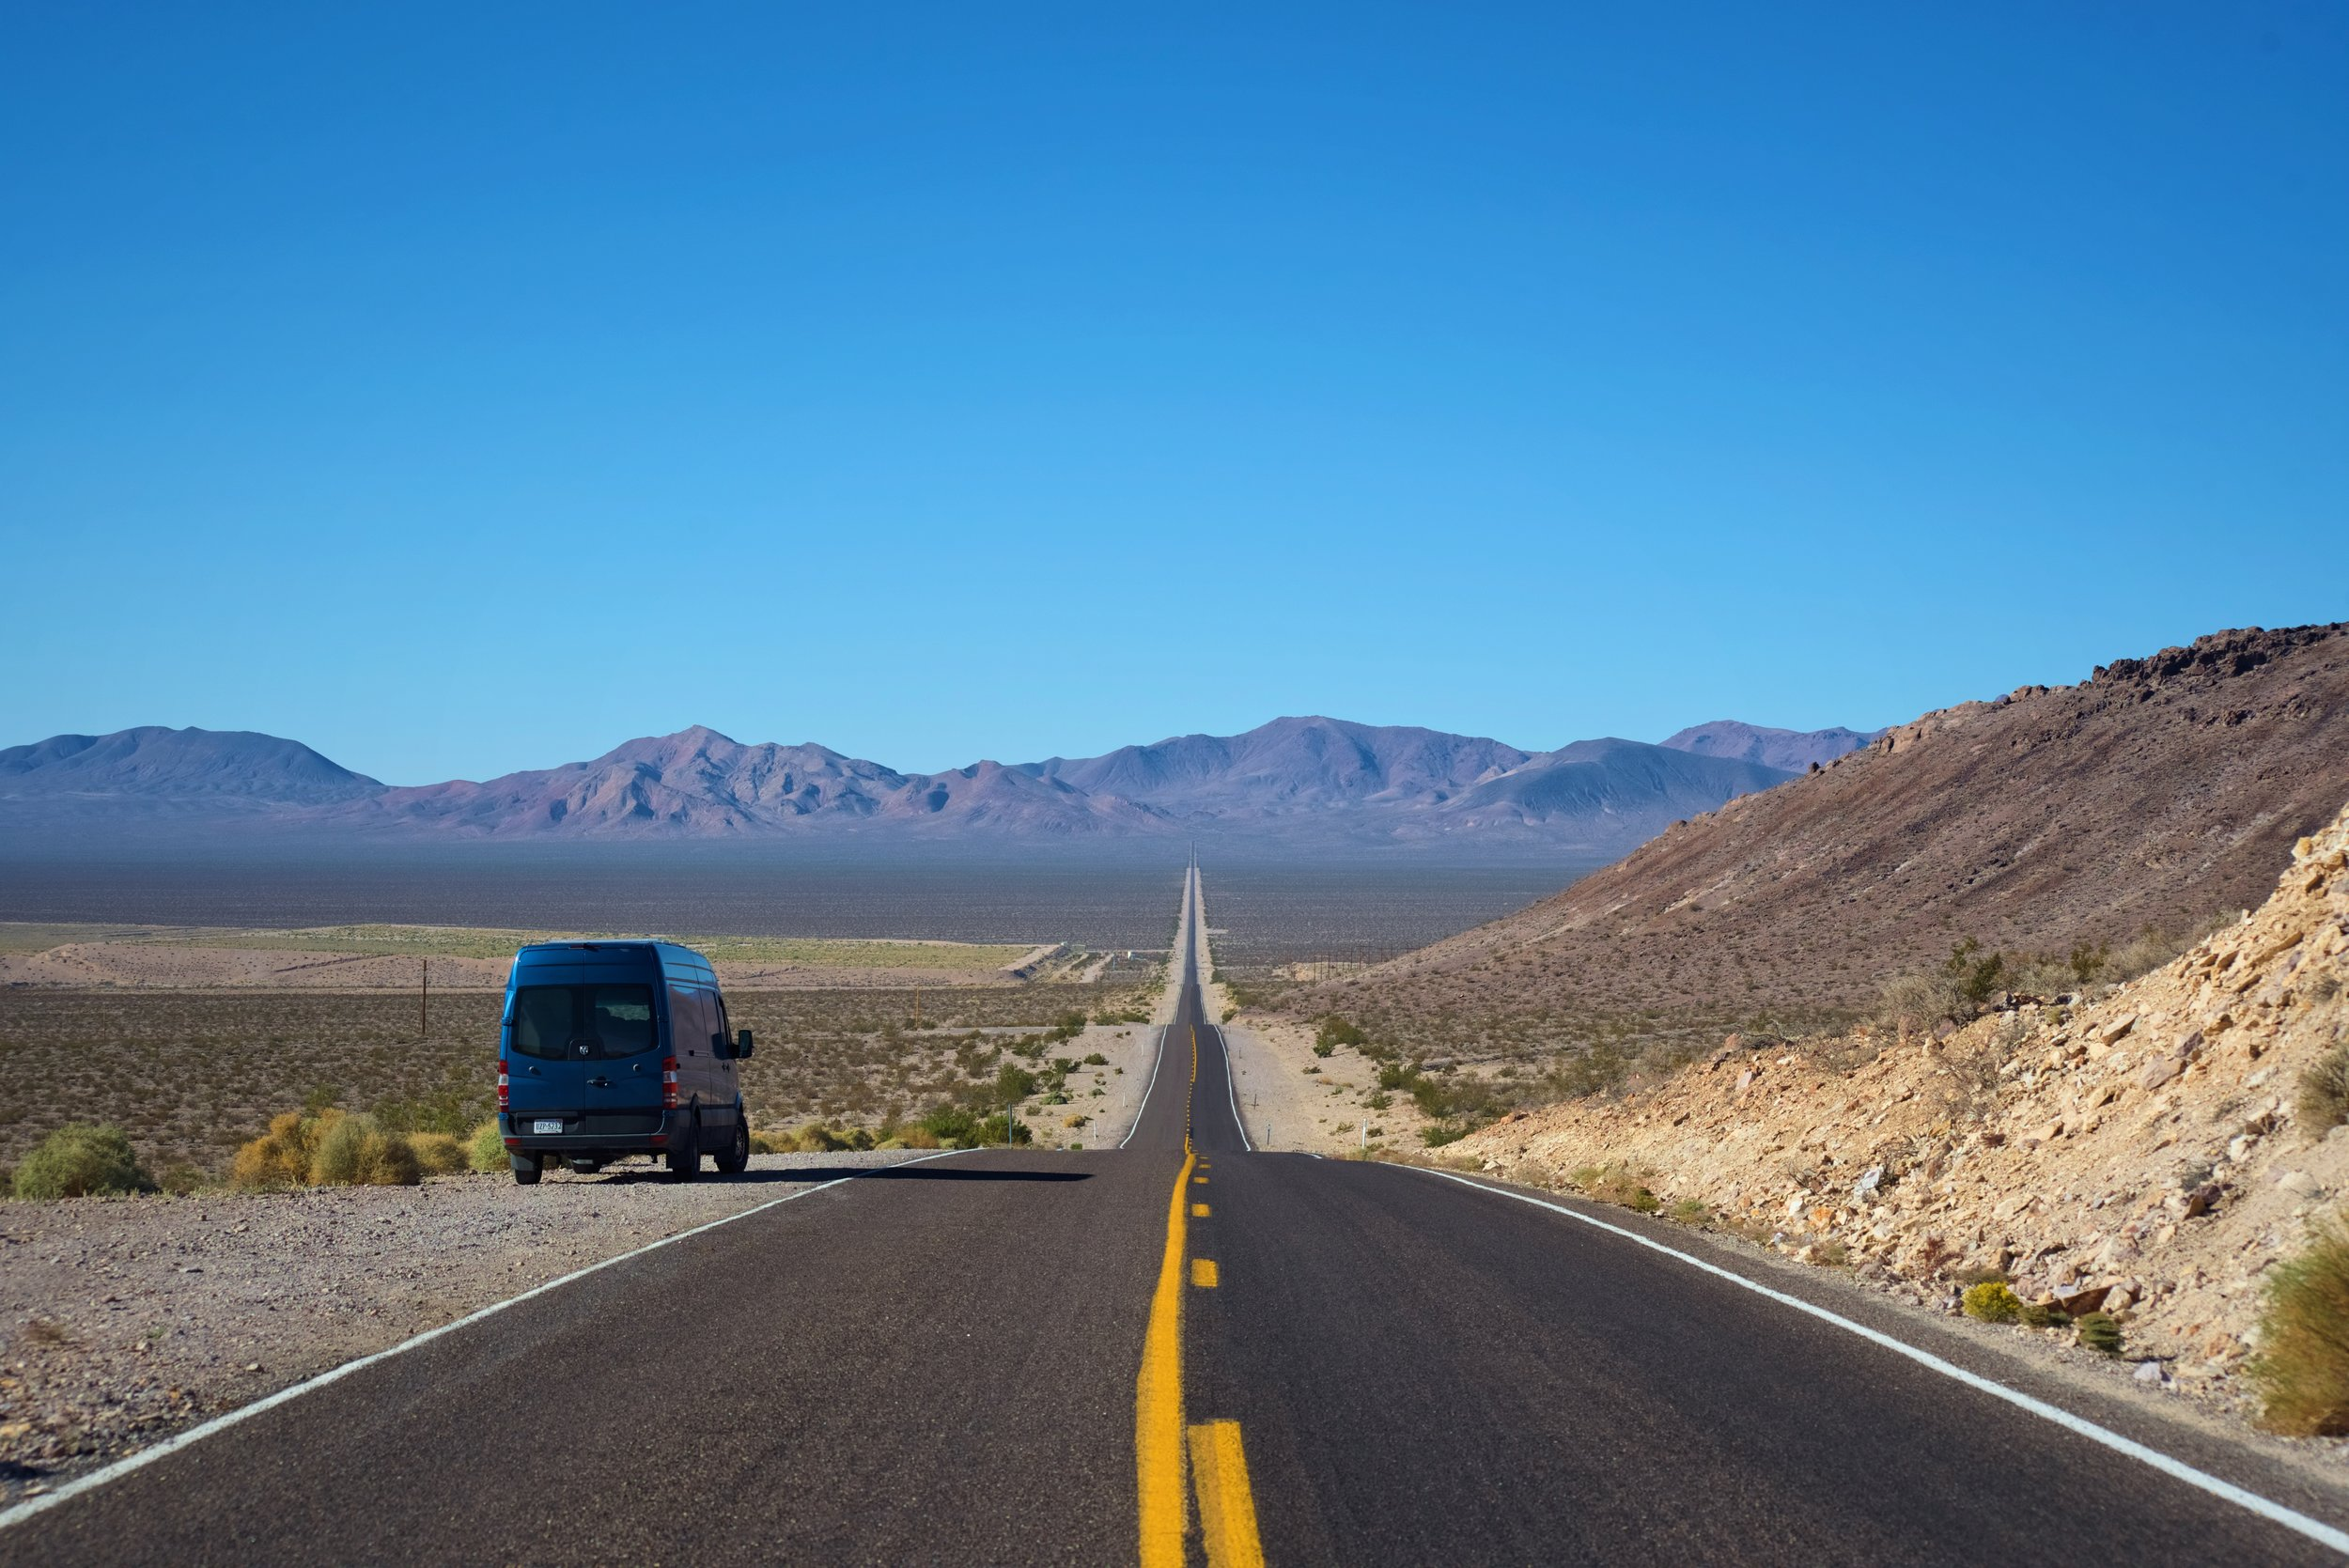 The road we took leading to Death Valley. Nevada has many lonely roads like this.